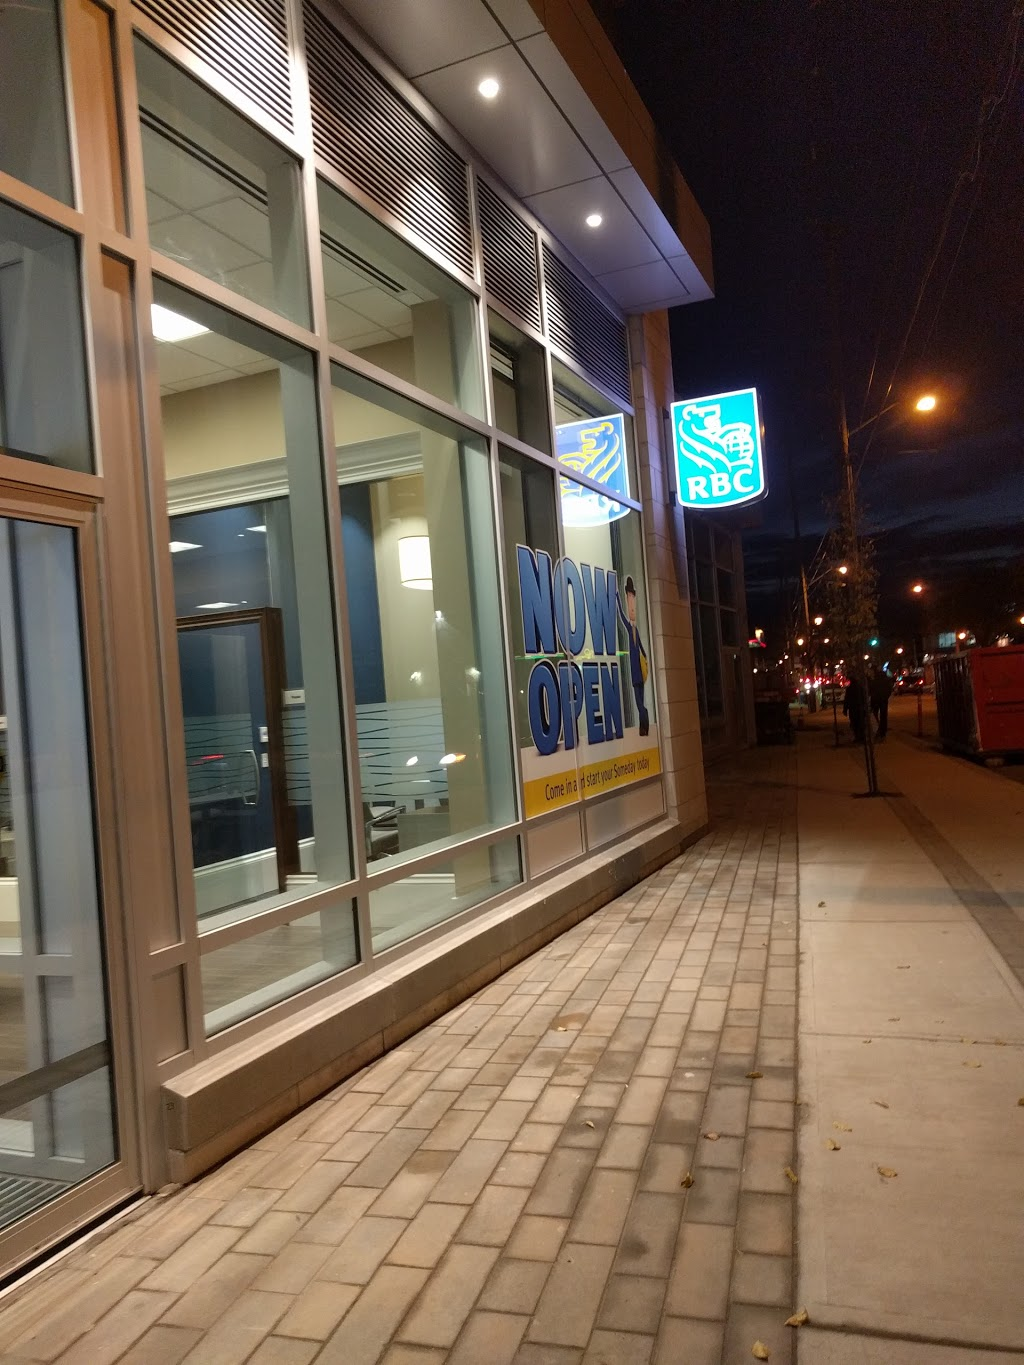 RBC Royal Bank | atm | 236 Richmond Rd #104, Ottawa, ON K1Z 6W6, Canada | 6135652820 OR +1 613-565-2820